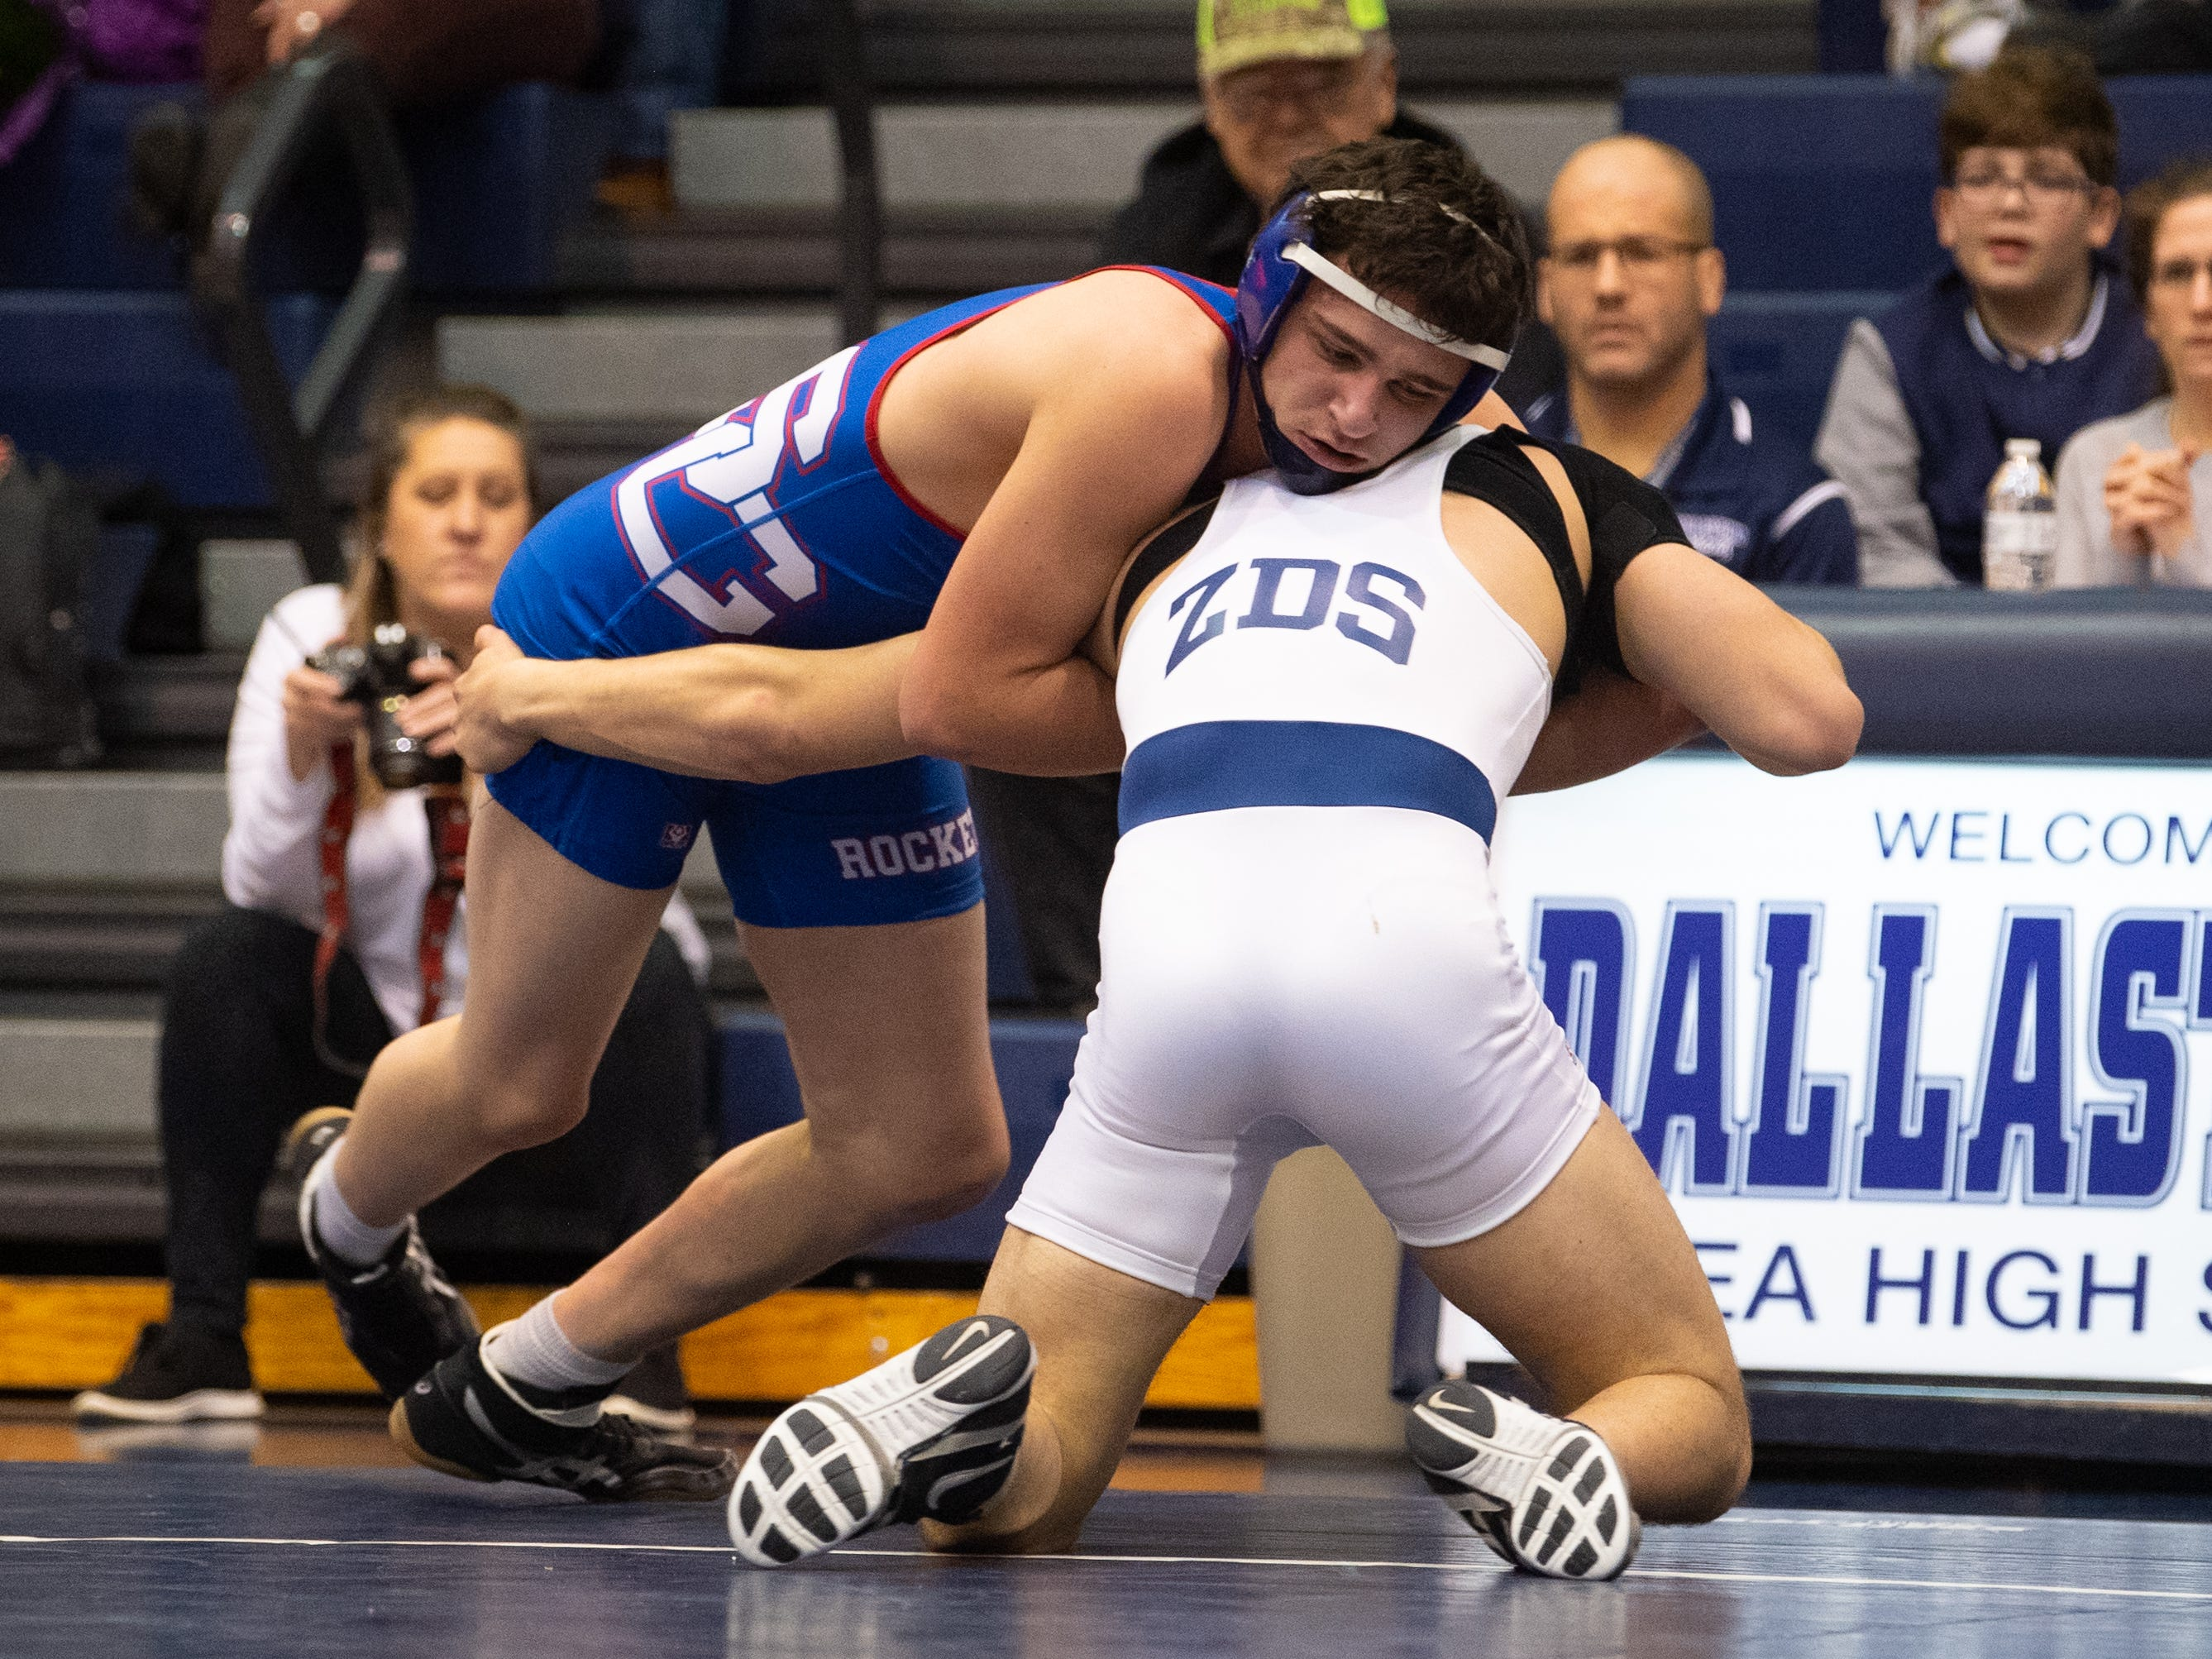 Camden Rice of Spring Grove tries to stay in the wrestling circle during the wrestling dual meet between Dallastown and Spring Grove, January 17, 2019. The Wildcats defeated the Rockets 46-24.